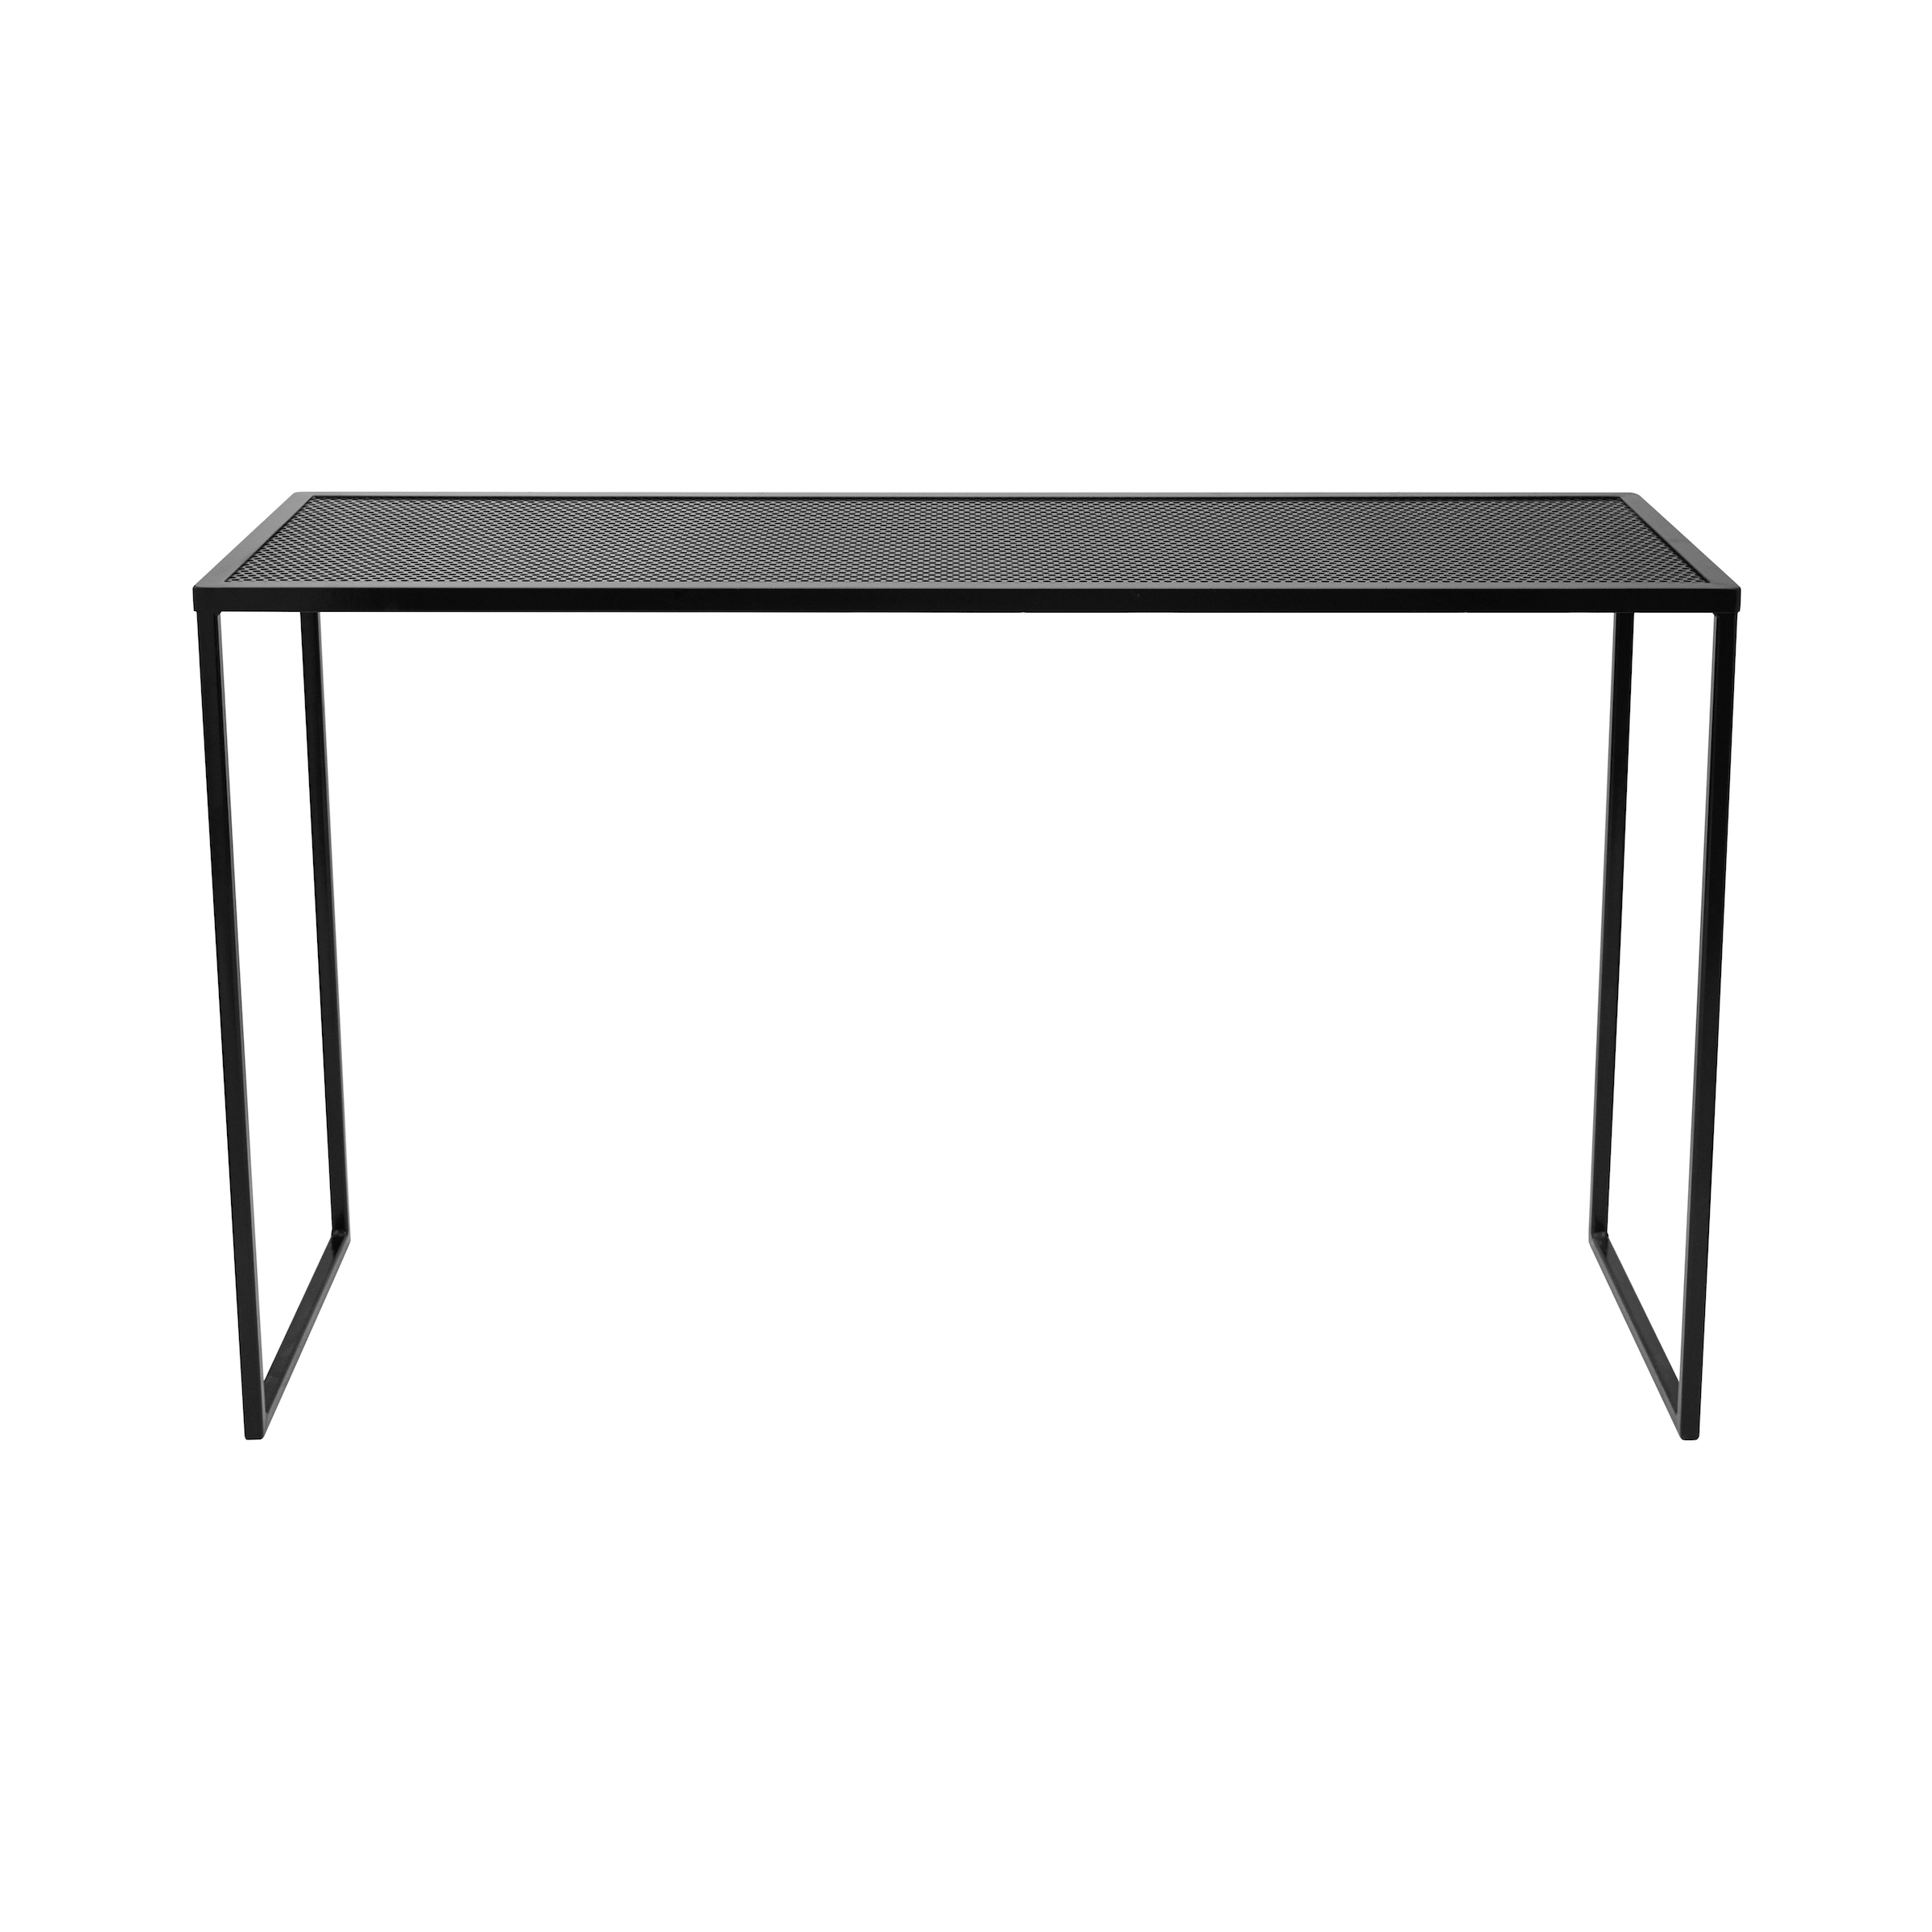 Bench Bar Table   Perforated Mesh (Black) Part 59